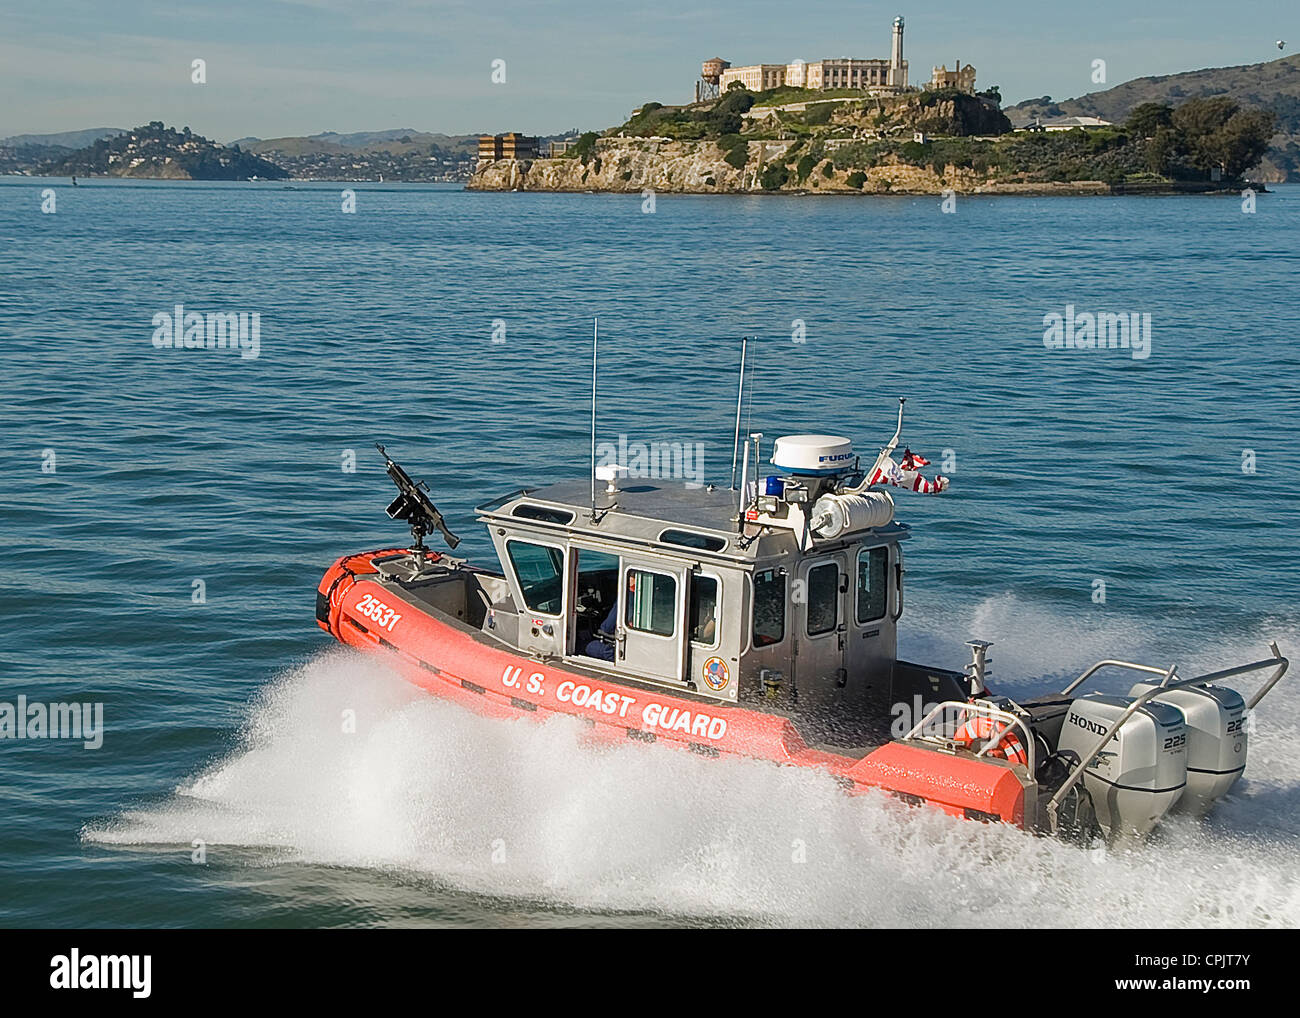 A Coast Guard 25-foot Response Boat patrols near Alcatraz Island February 10, 2011 in San Francisco Bay. - Stock Image